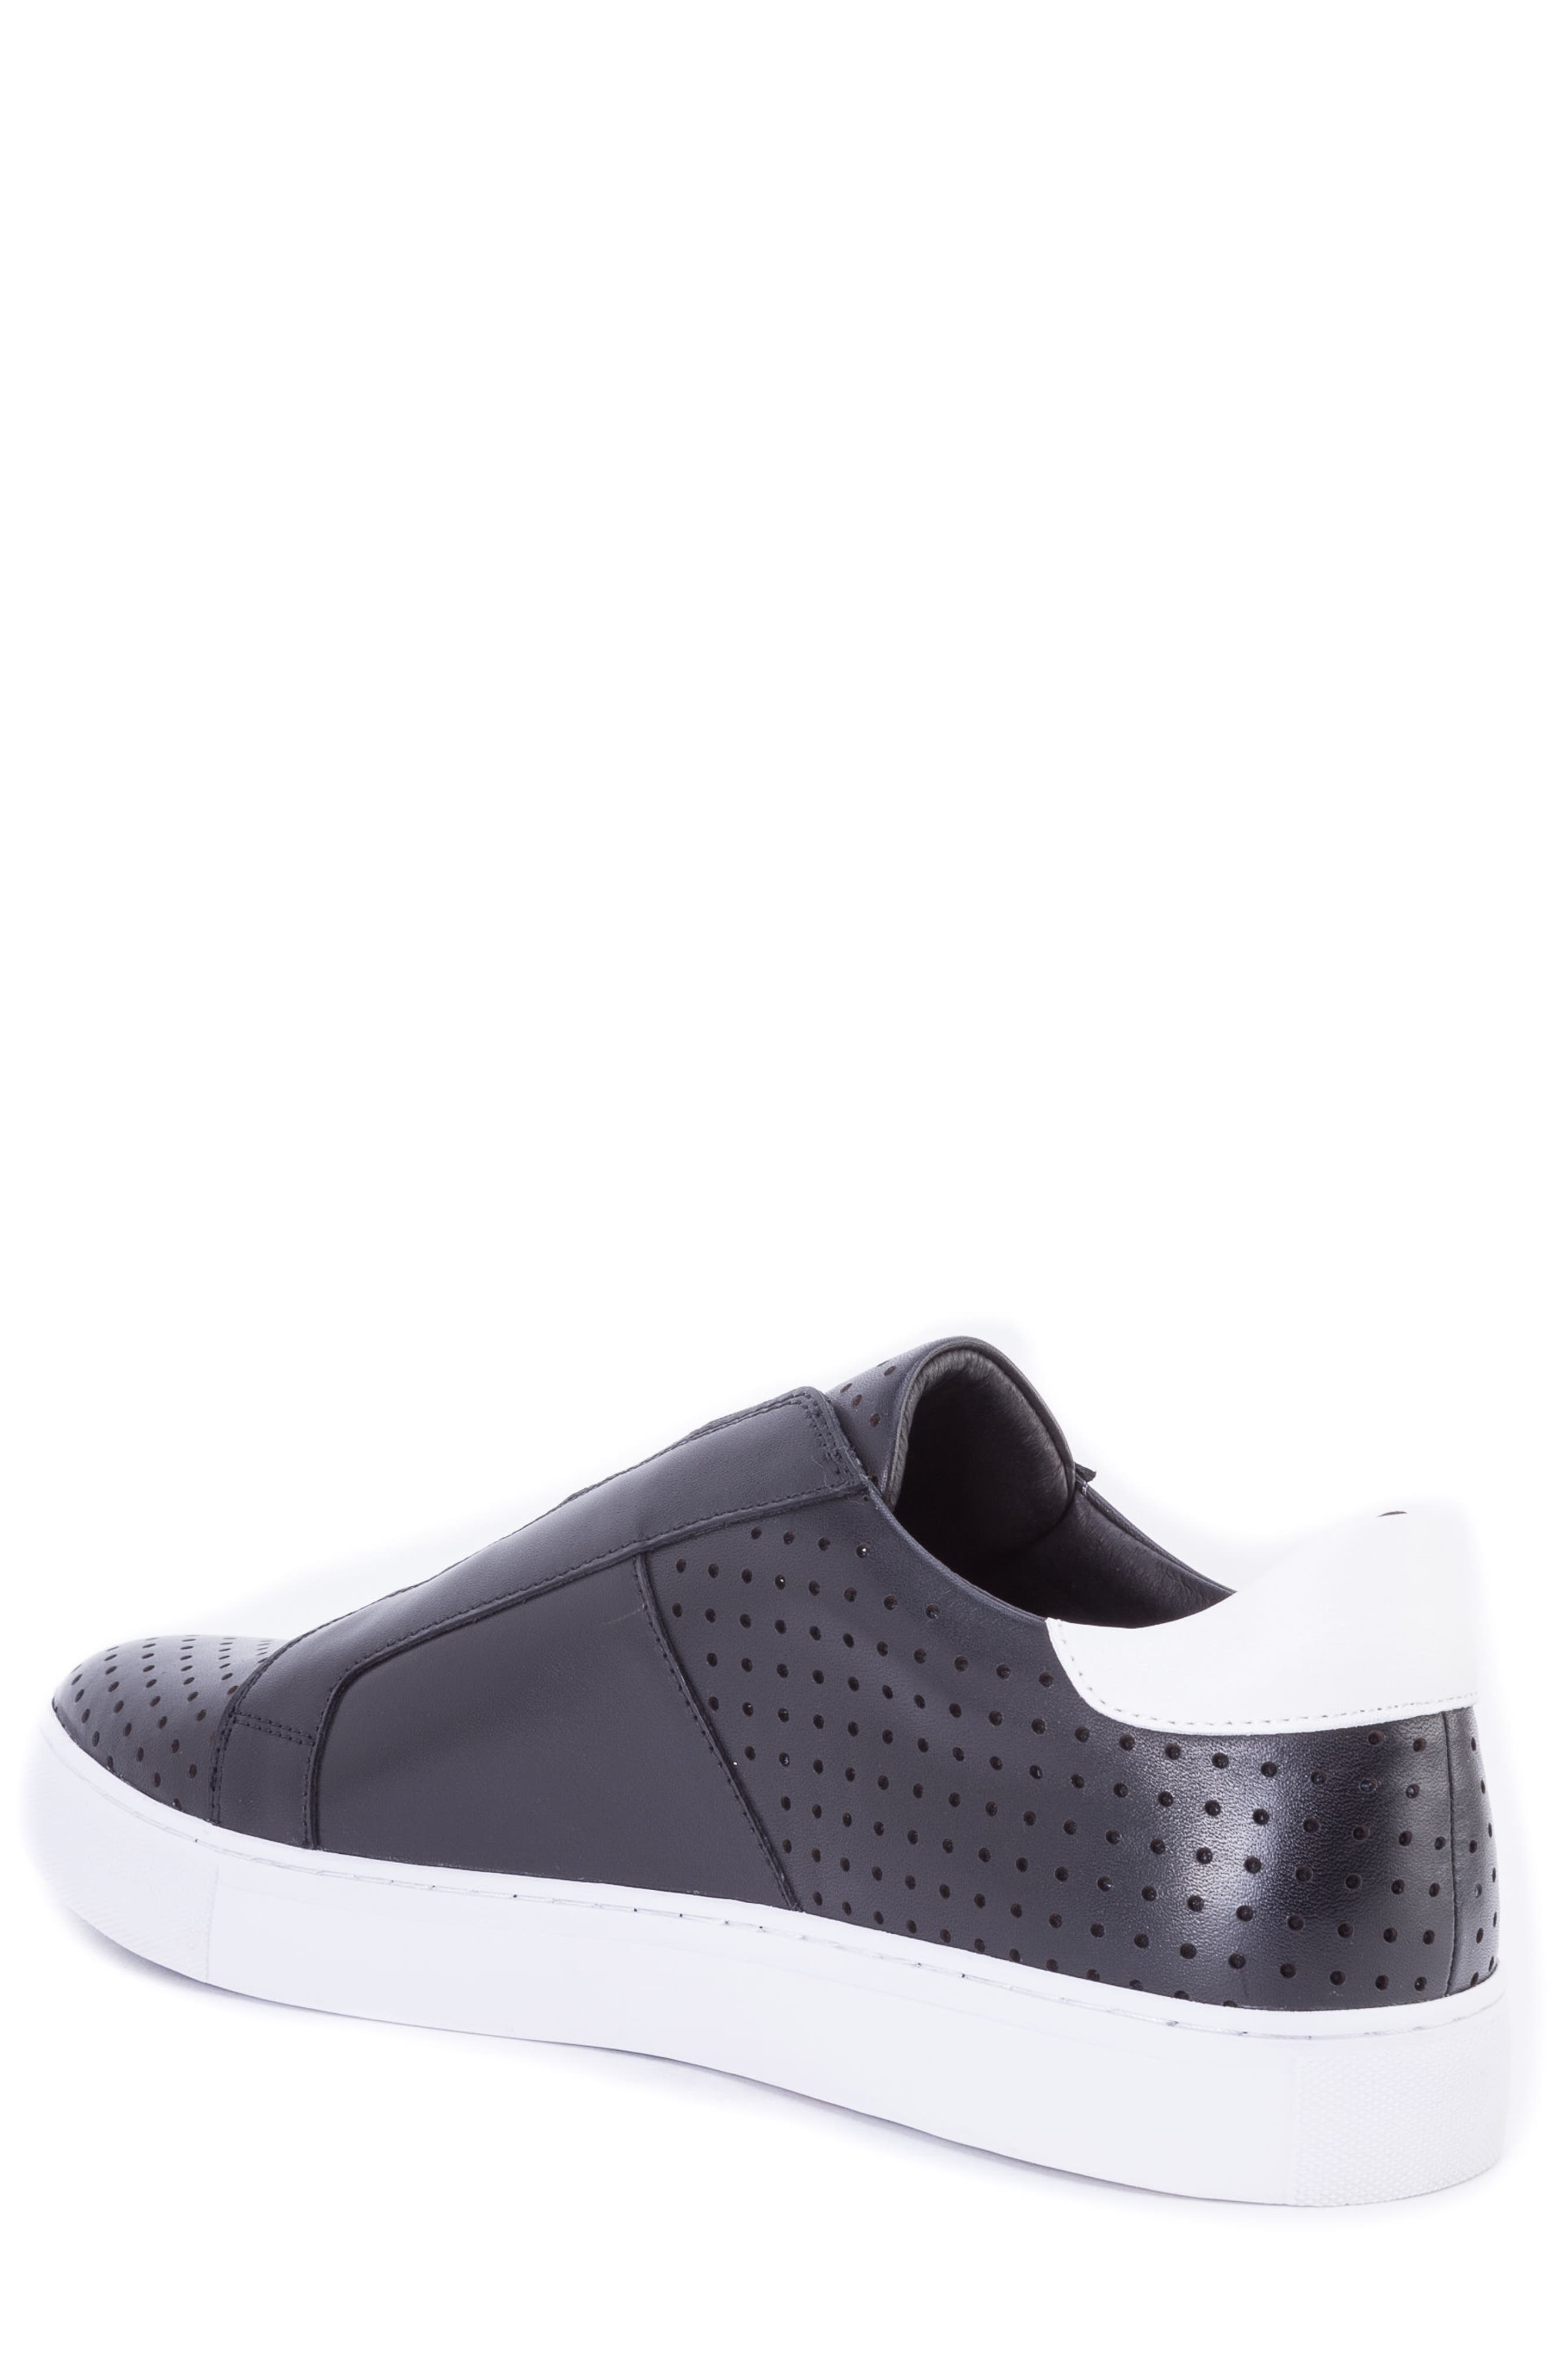 Rowley Perforated Laceless Sneaker,                             Alternate thumbnail 2, color,                             BLACK LEATHER